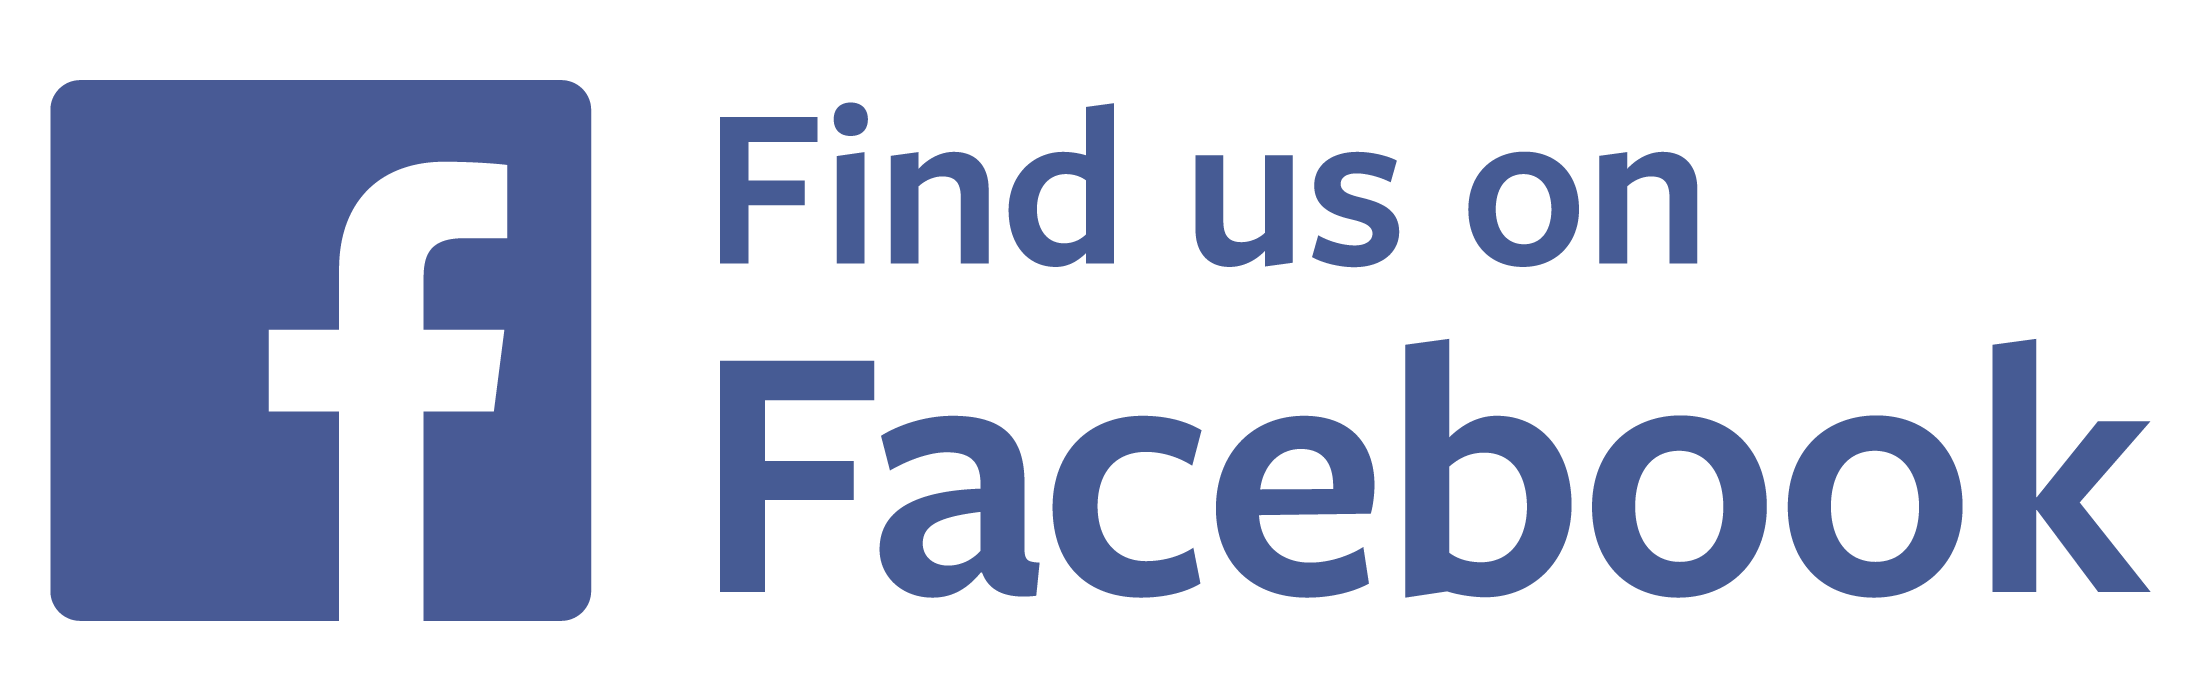 find us on facebook logo transparent vector